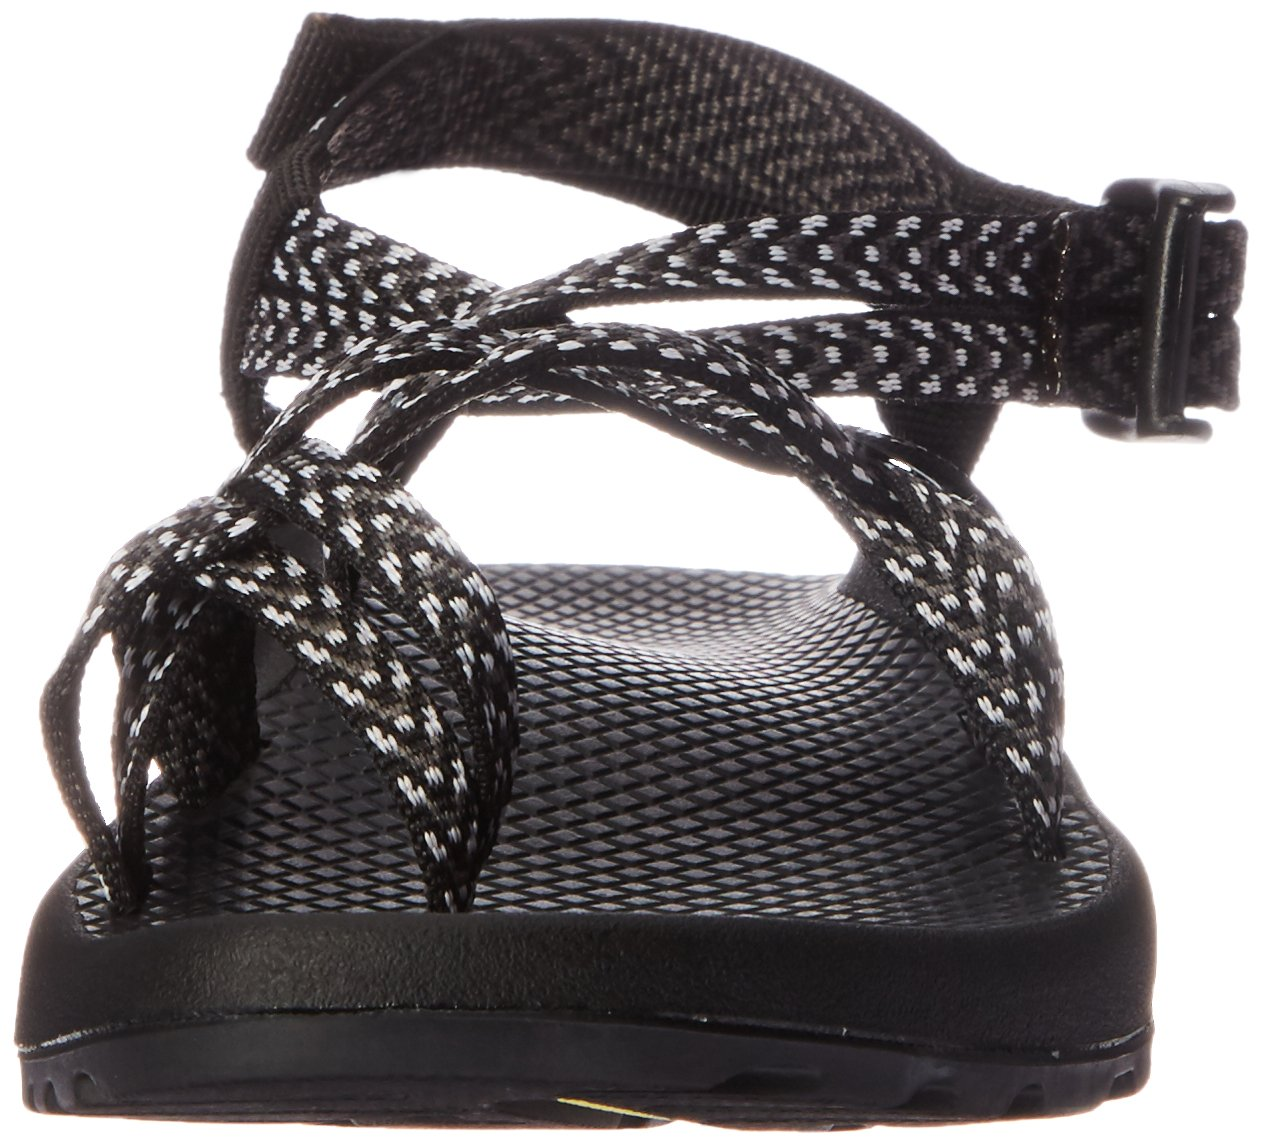 Chaco Women's Zx2 Classic Athletic Sandal B01H4X9M3G 12 M US|Boost Black